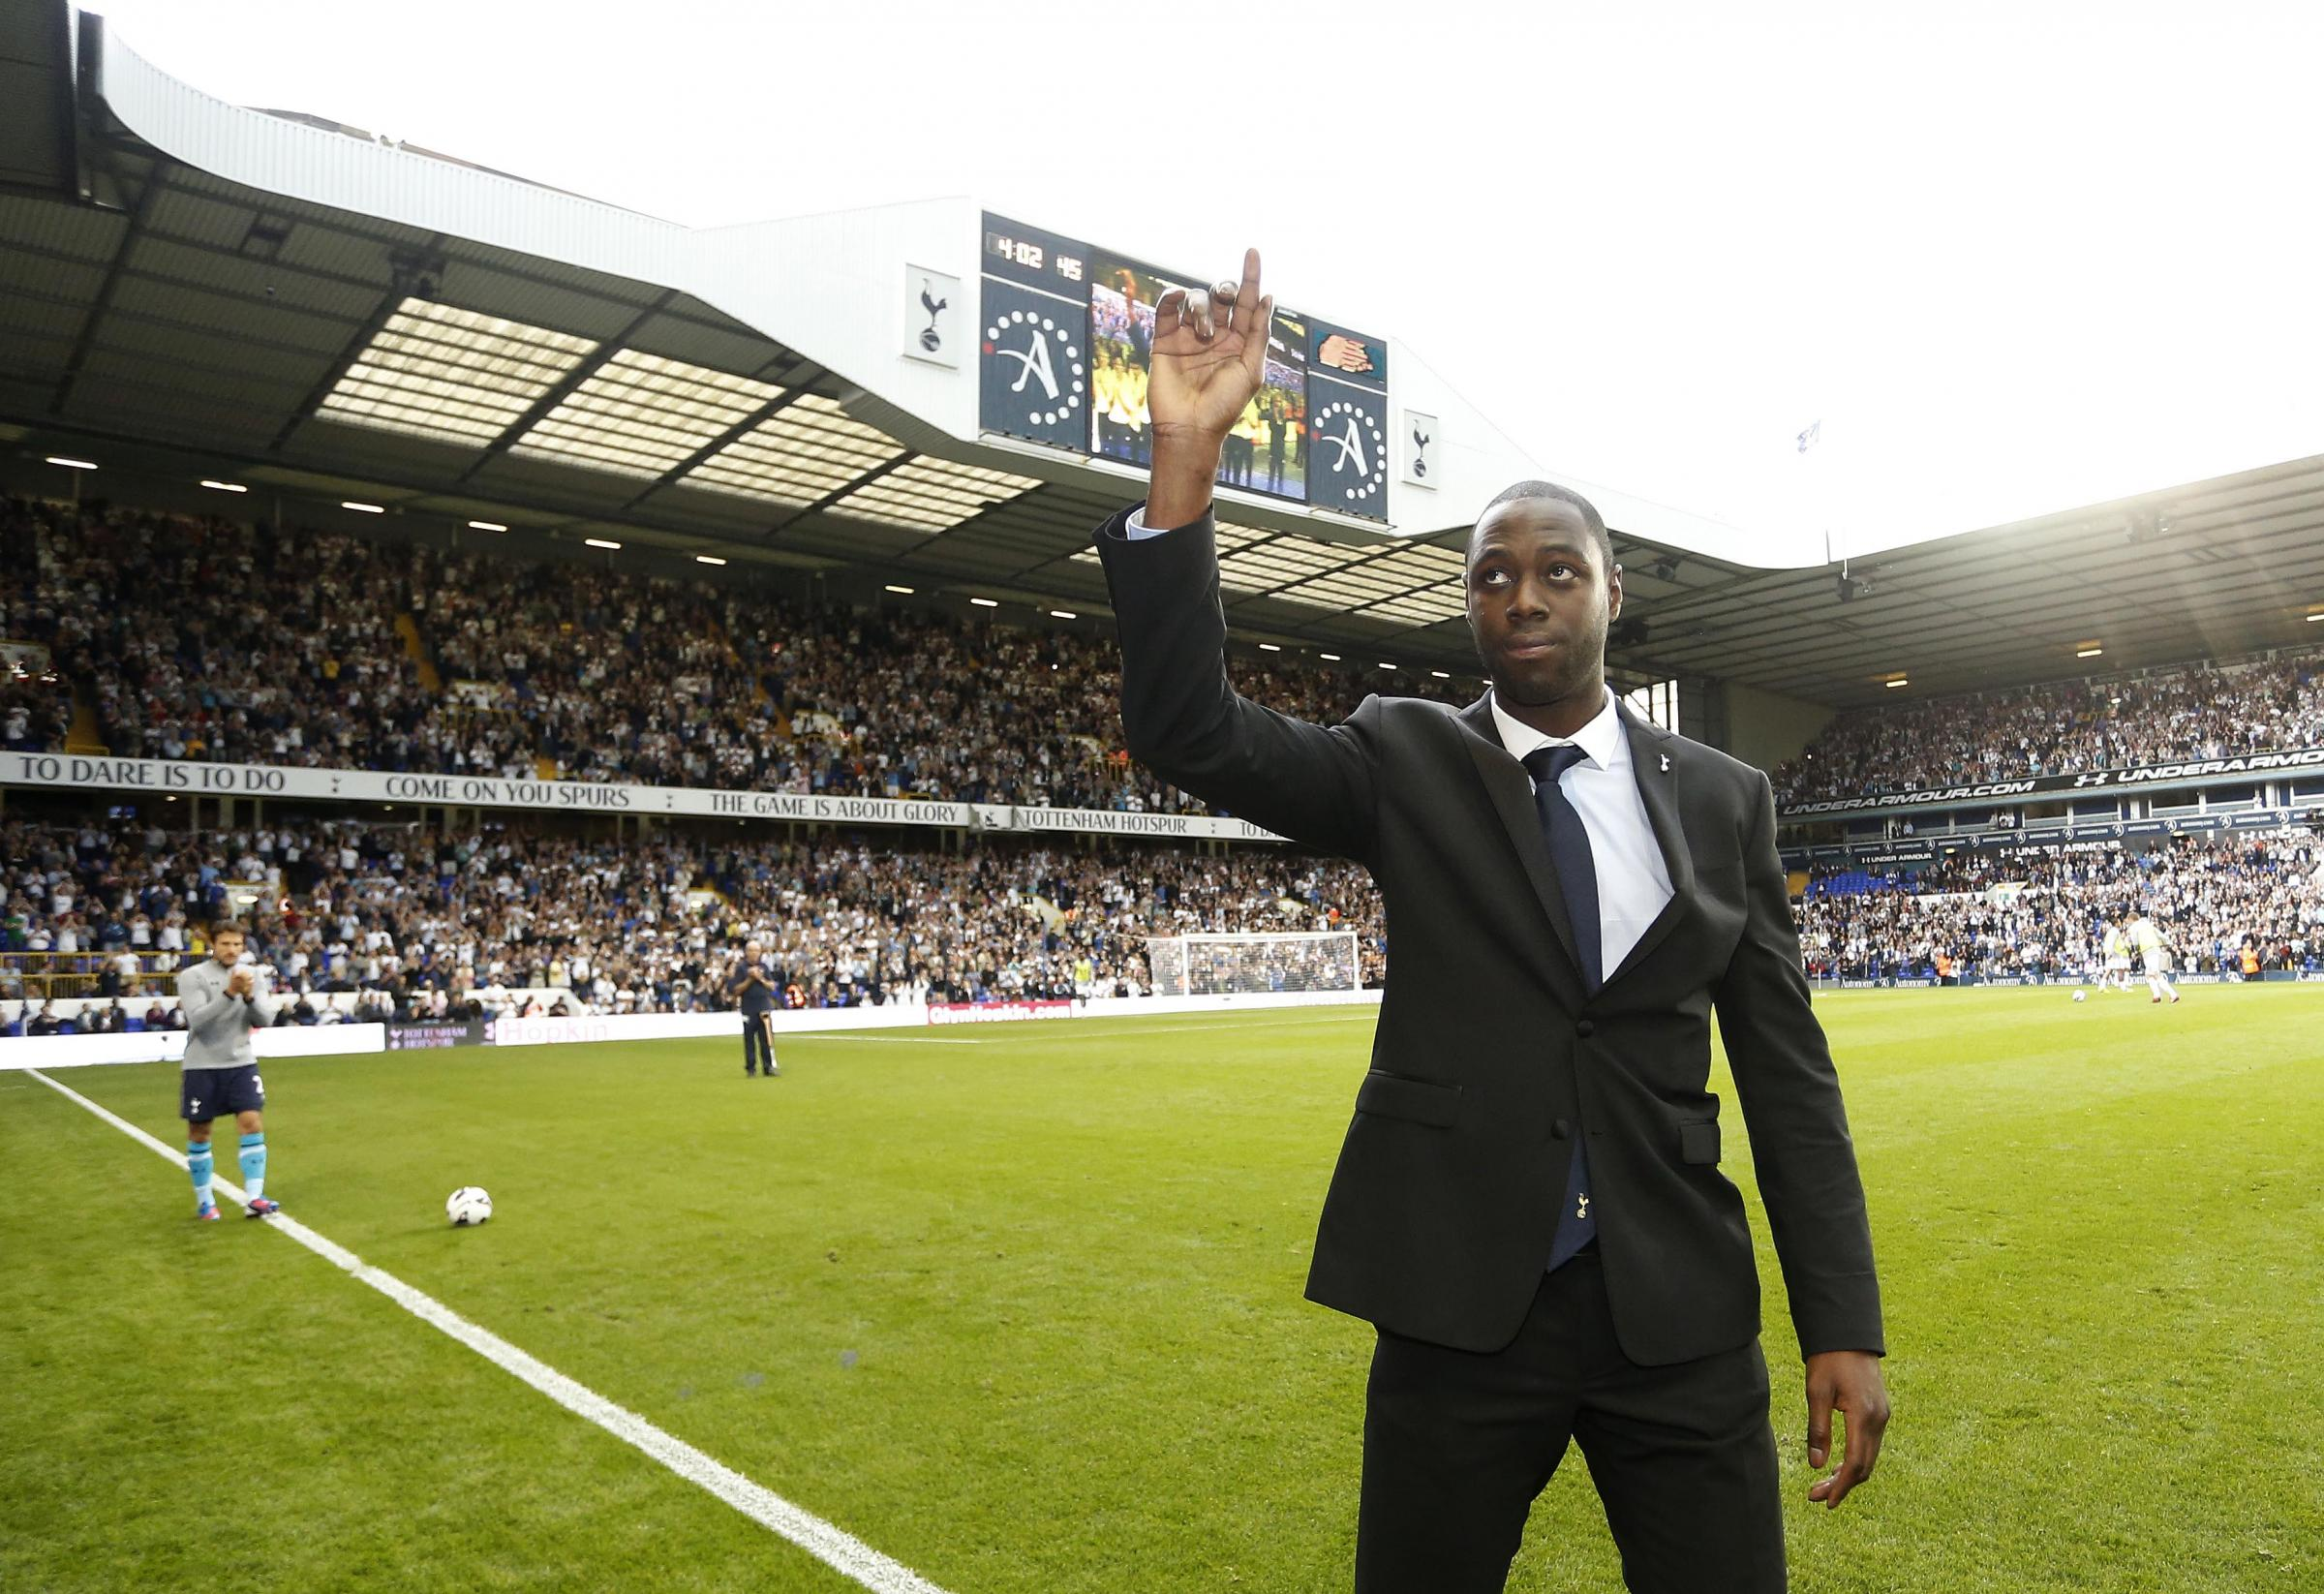 King will step out on to the pitch in a Spurs shirt at White Hart Lane for the last time on May 12